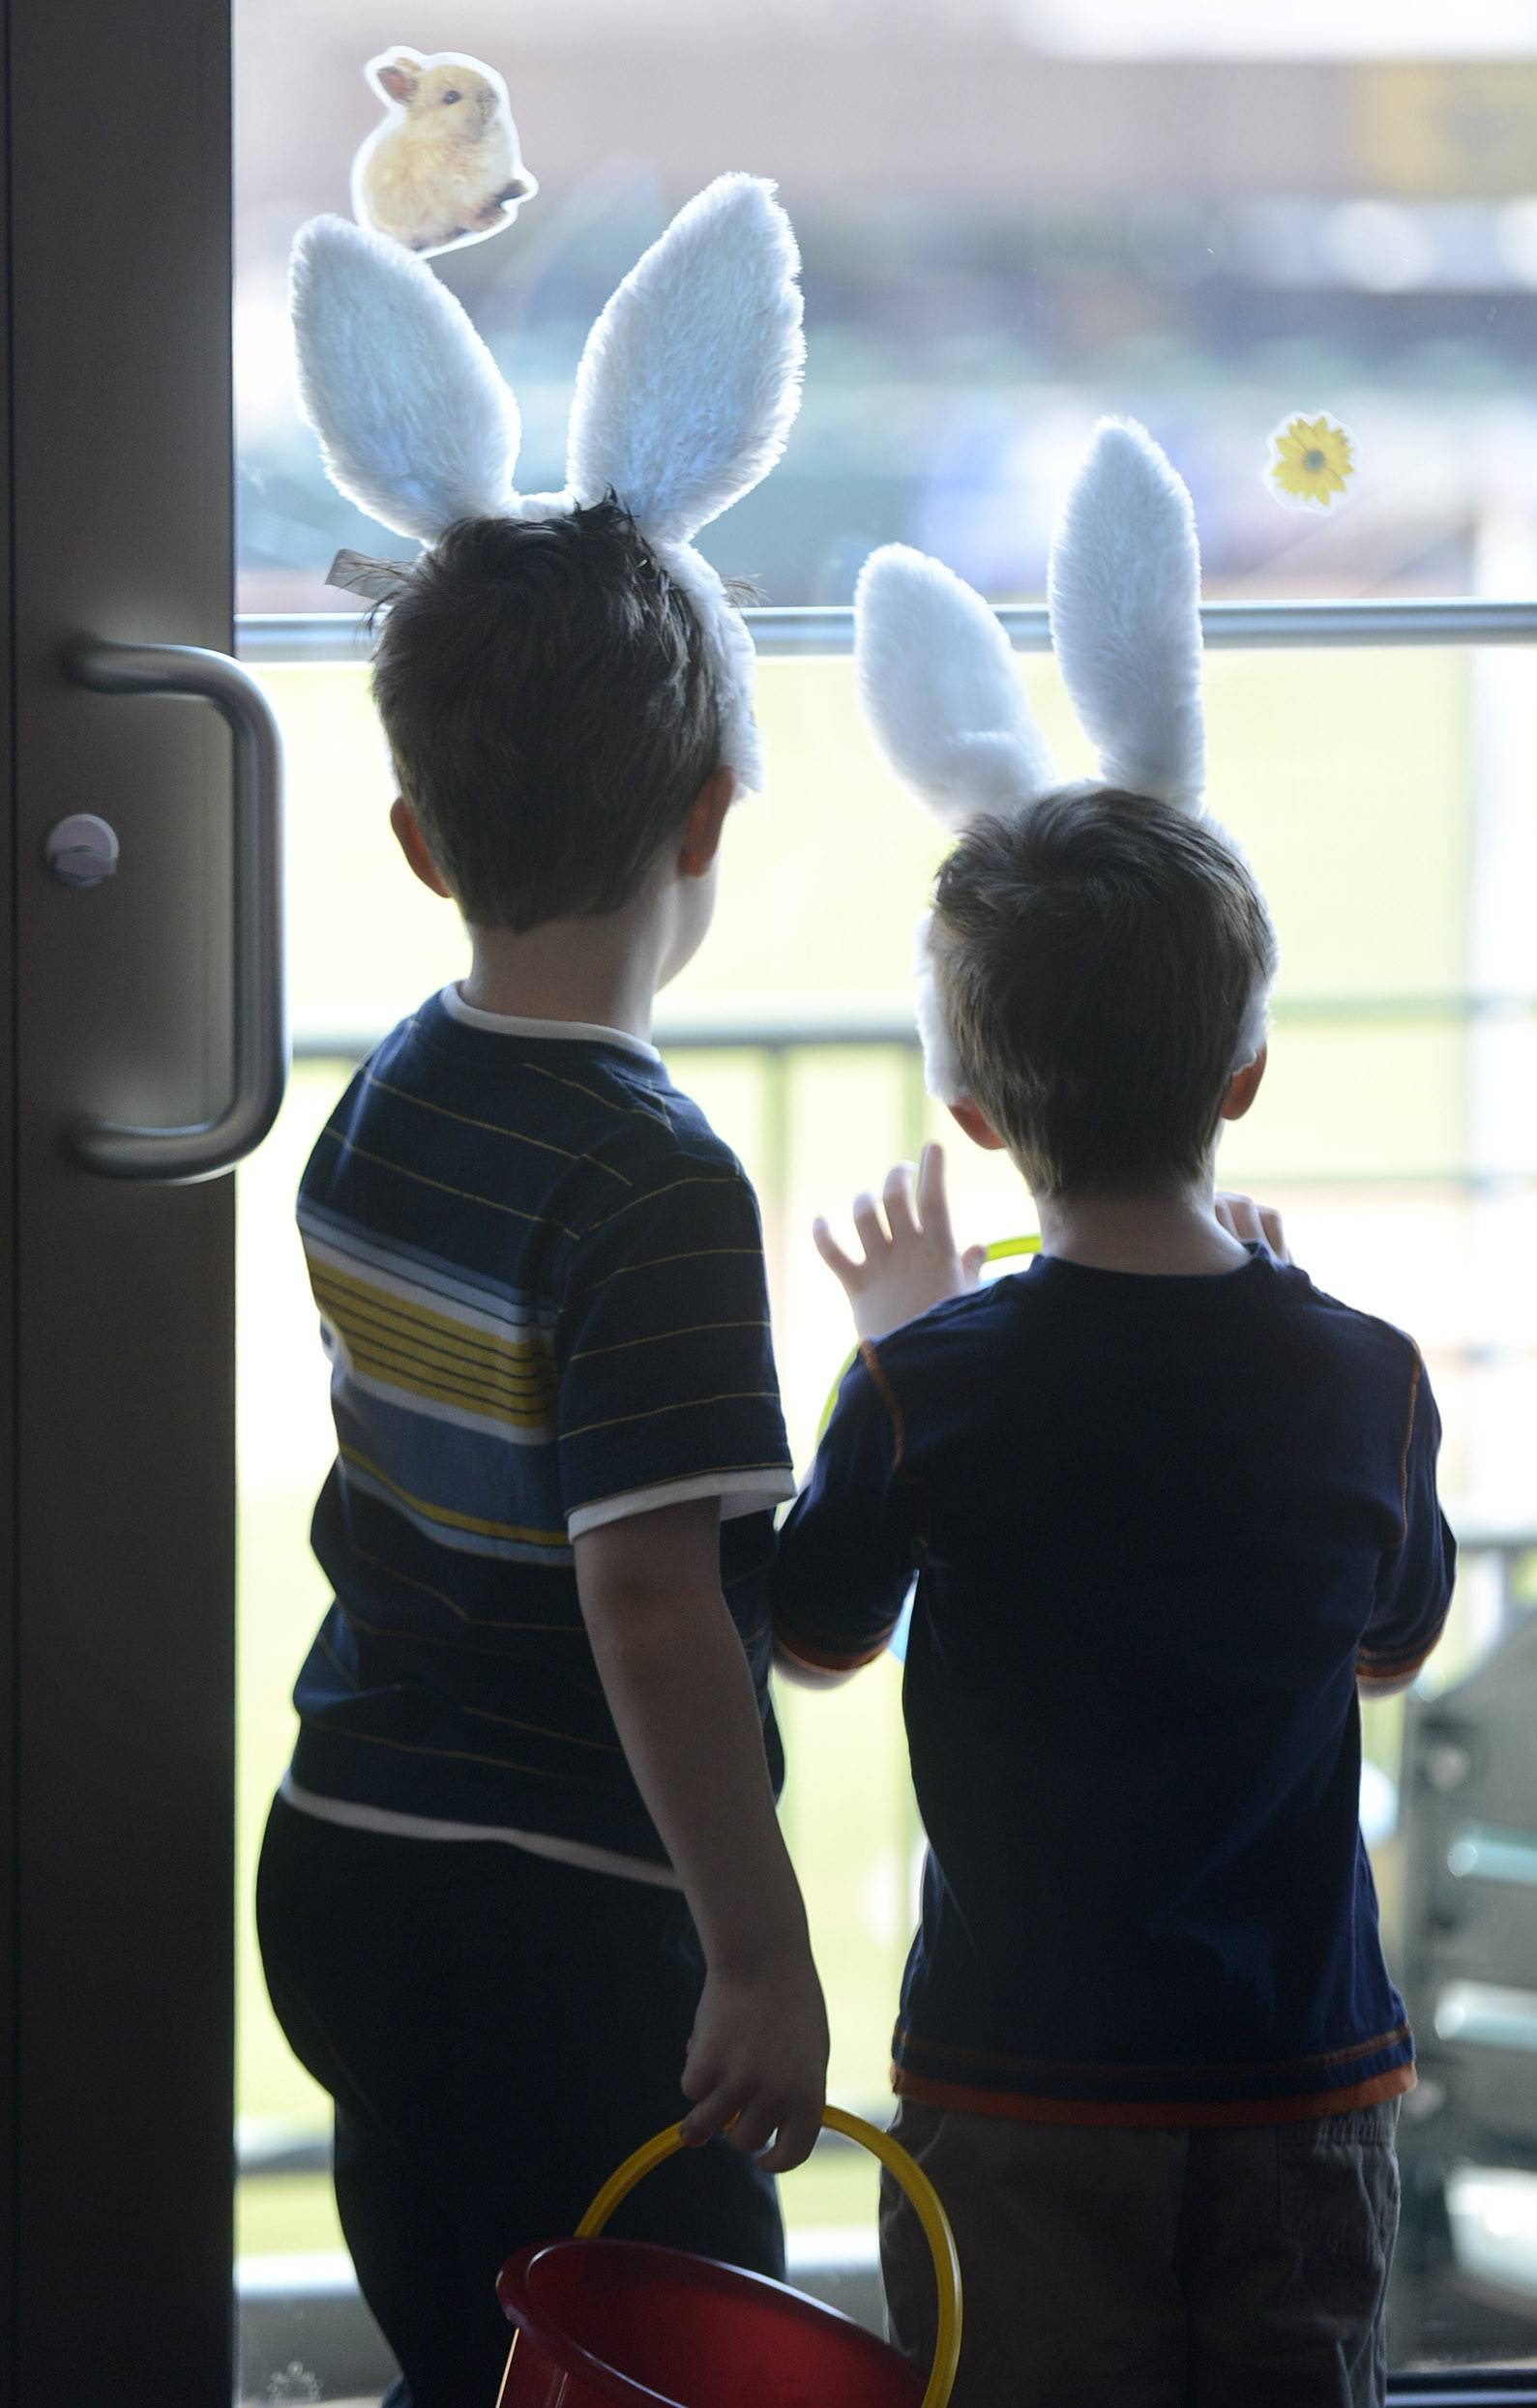 Jackson Karlovsky, 6, left, and his brother, Finnegan, 4, of Algonquin look out onto a ballfield filled with eggs at the Kane County Cougars Easter breakfast at Fifth Third Bank Ballpark in Geneva on Saturday. The two-hour breakfast concluded with an Easter egg hunt.